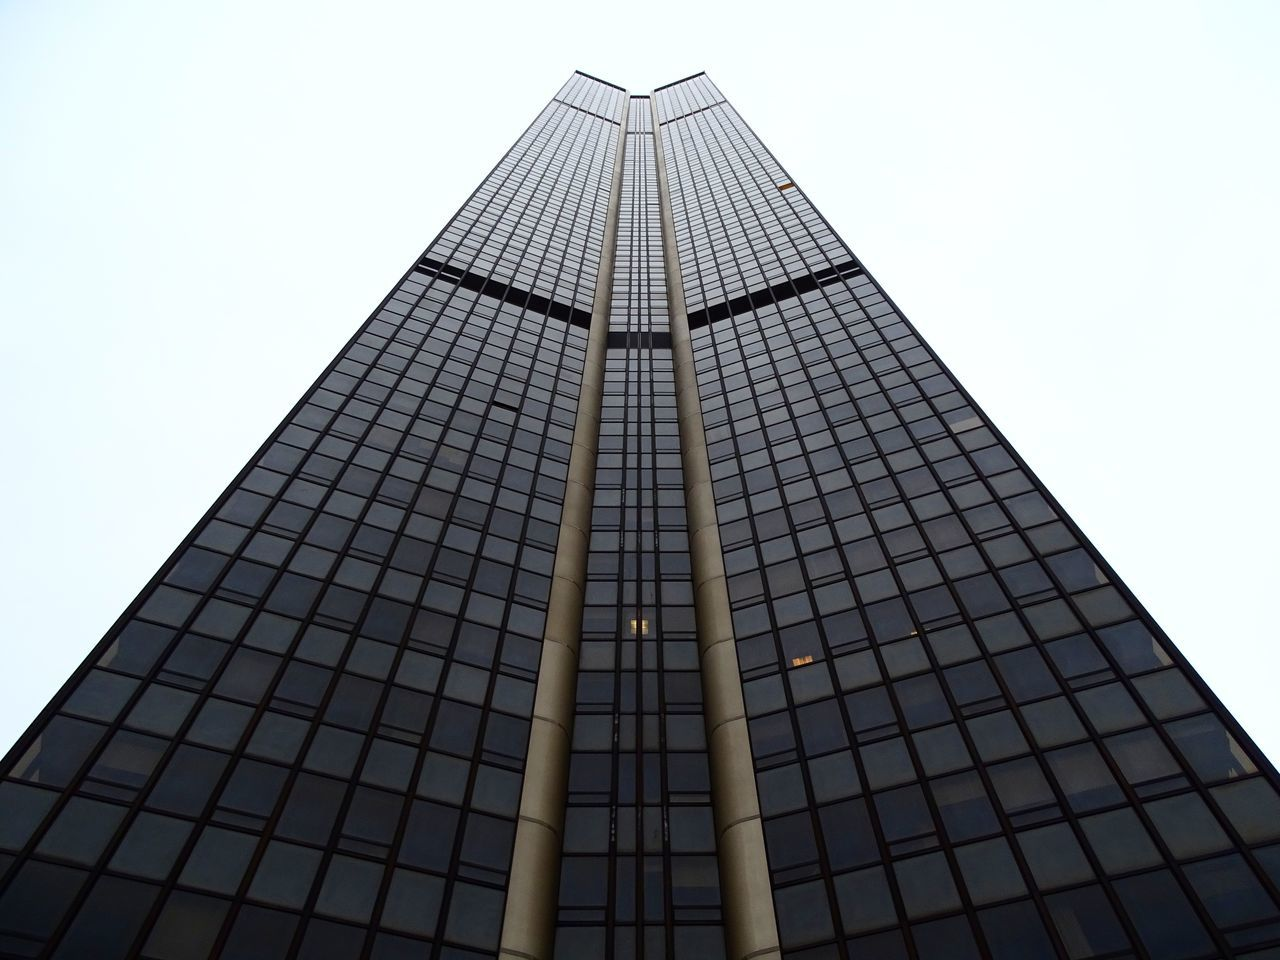 architecture, modern, built structure, skyscraper, tower, low angle view, building exterior, tall, city, no people, travel destinations, corporate business, day, outdoors, sky